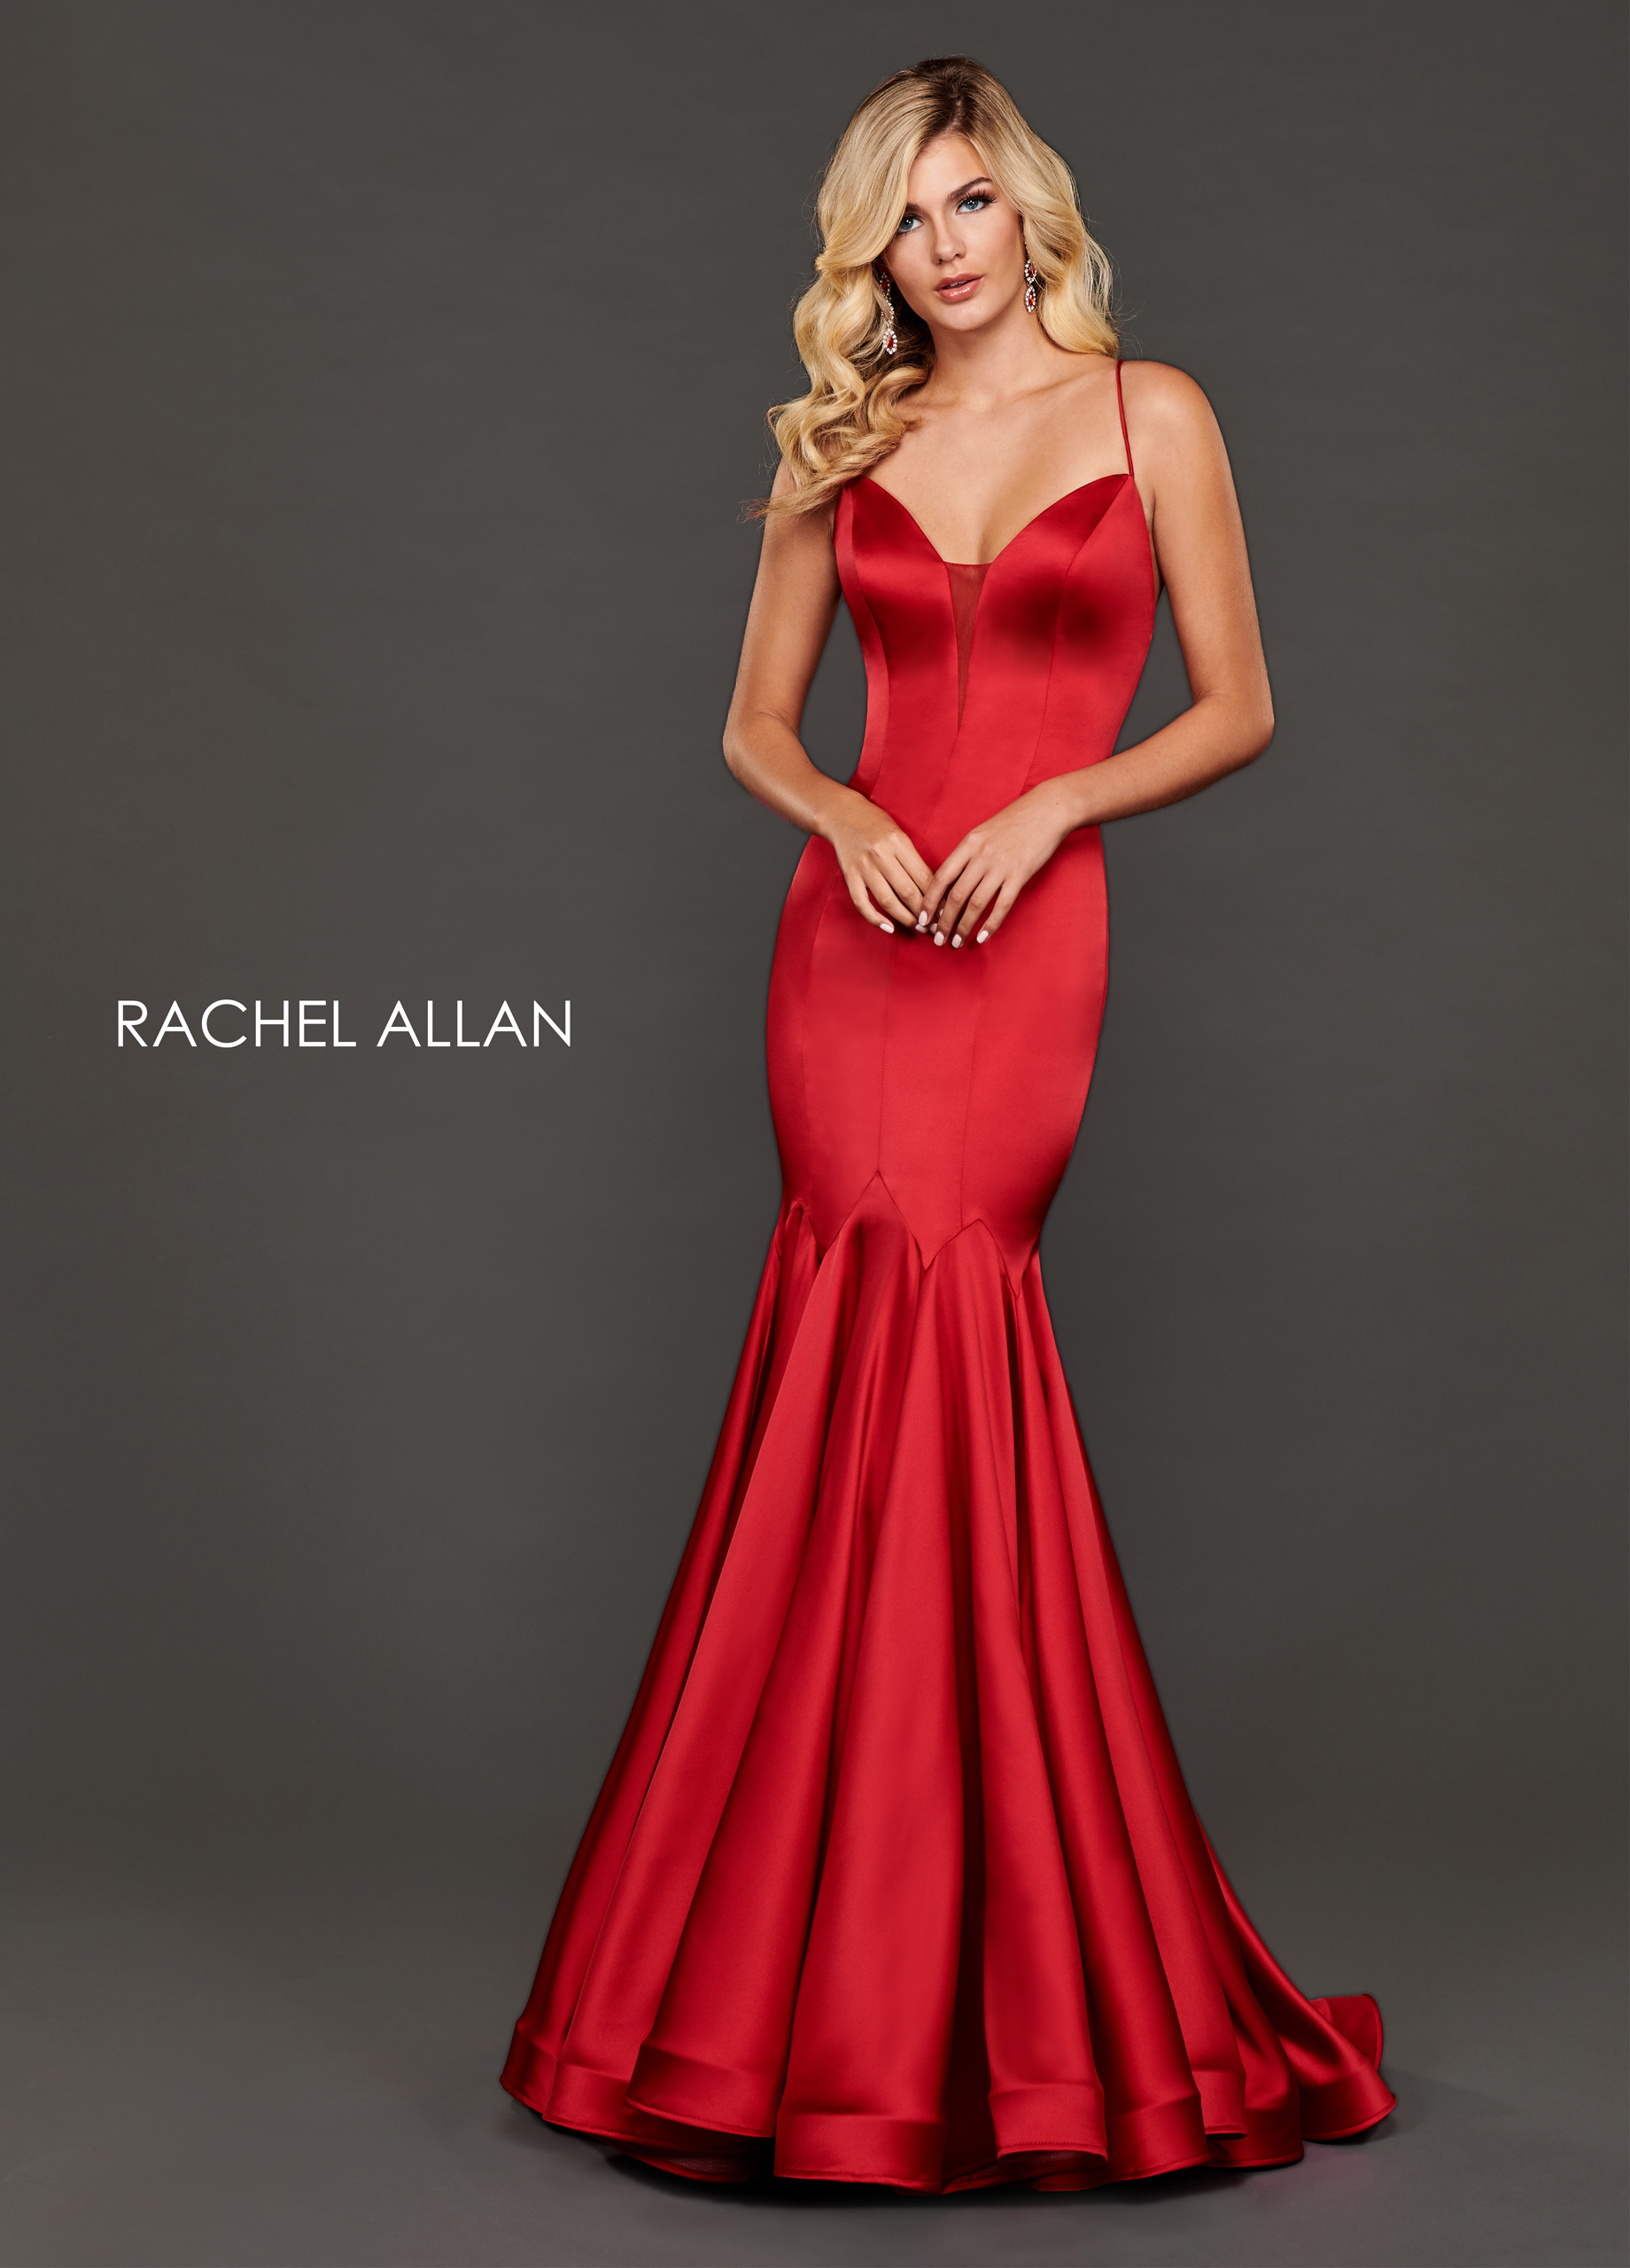 Sweetheart Mermaid Couture Dresses in Red Color